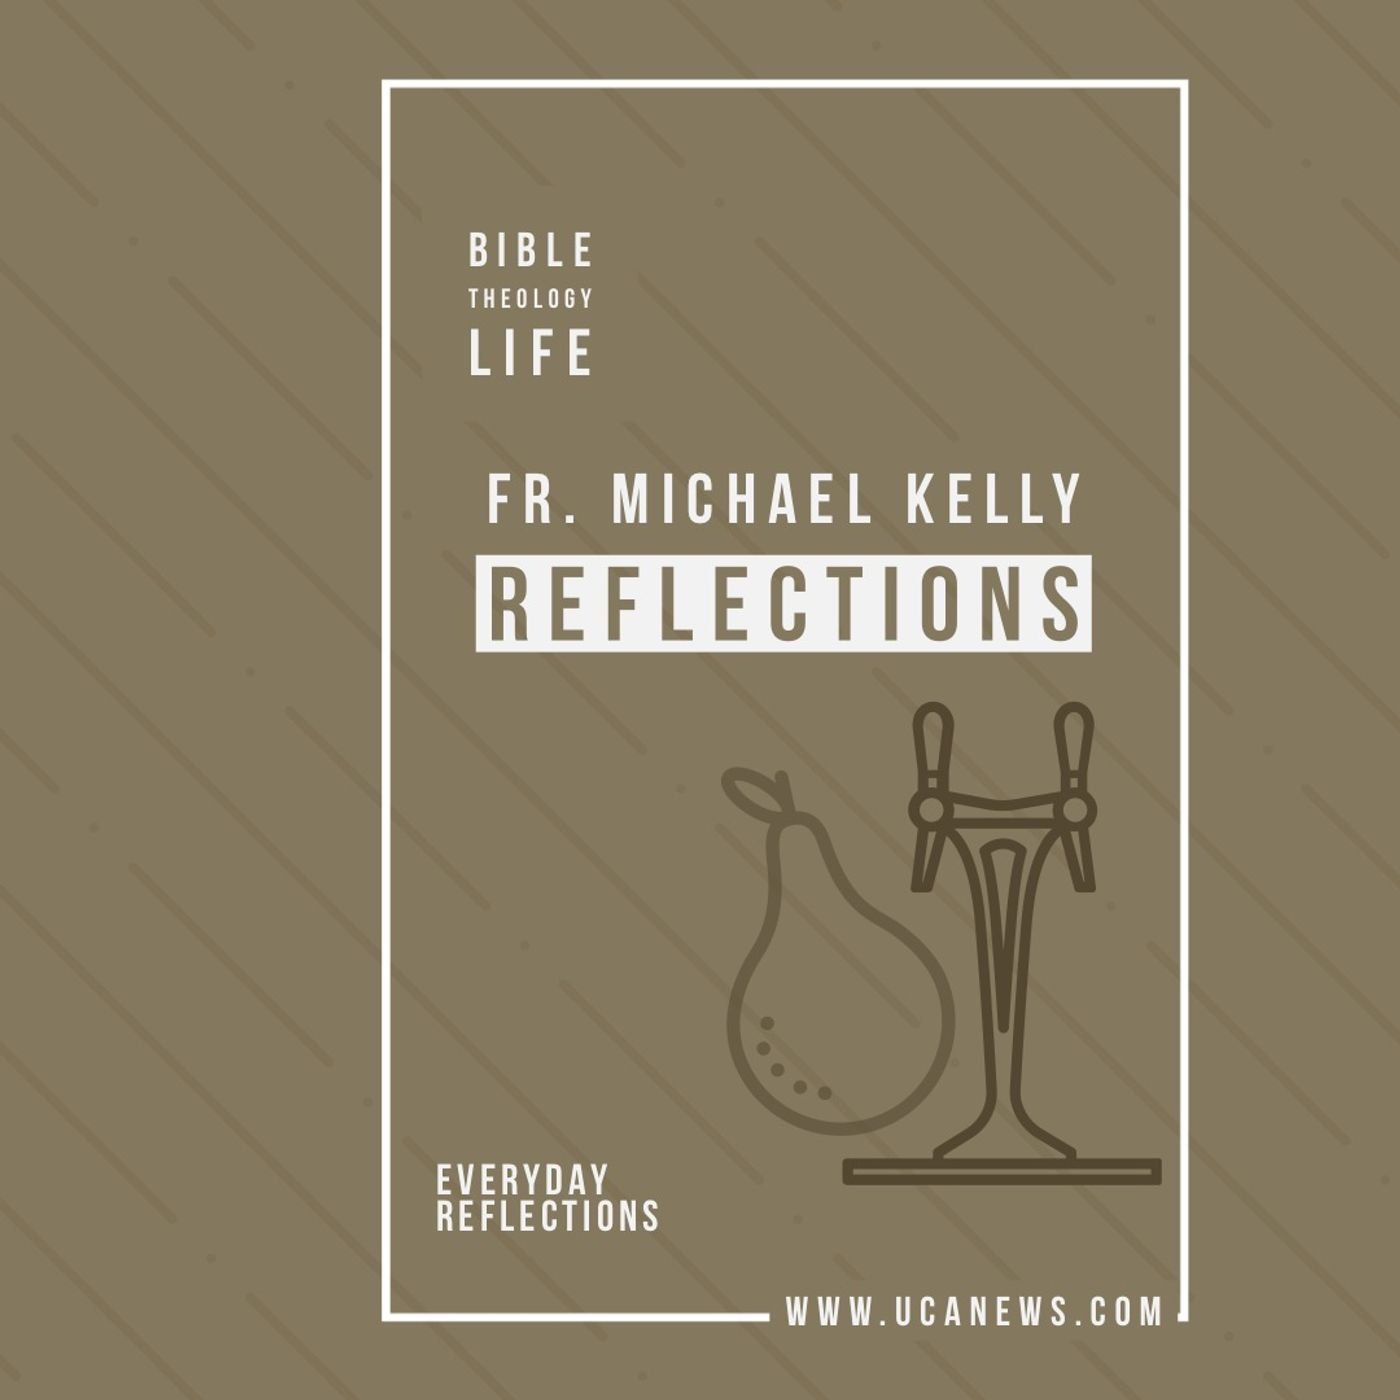 Reflections with Fr. Michael Kelly - Friday 11 Jun, 2021